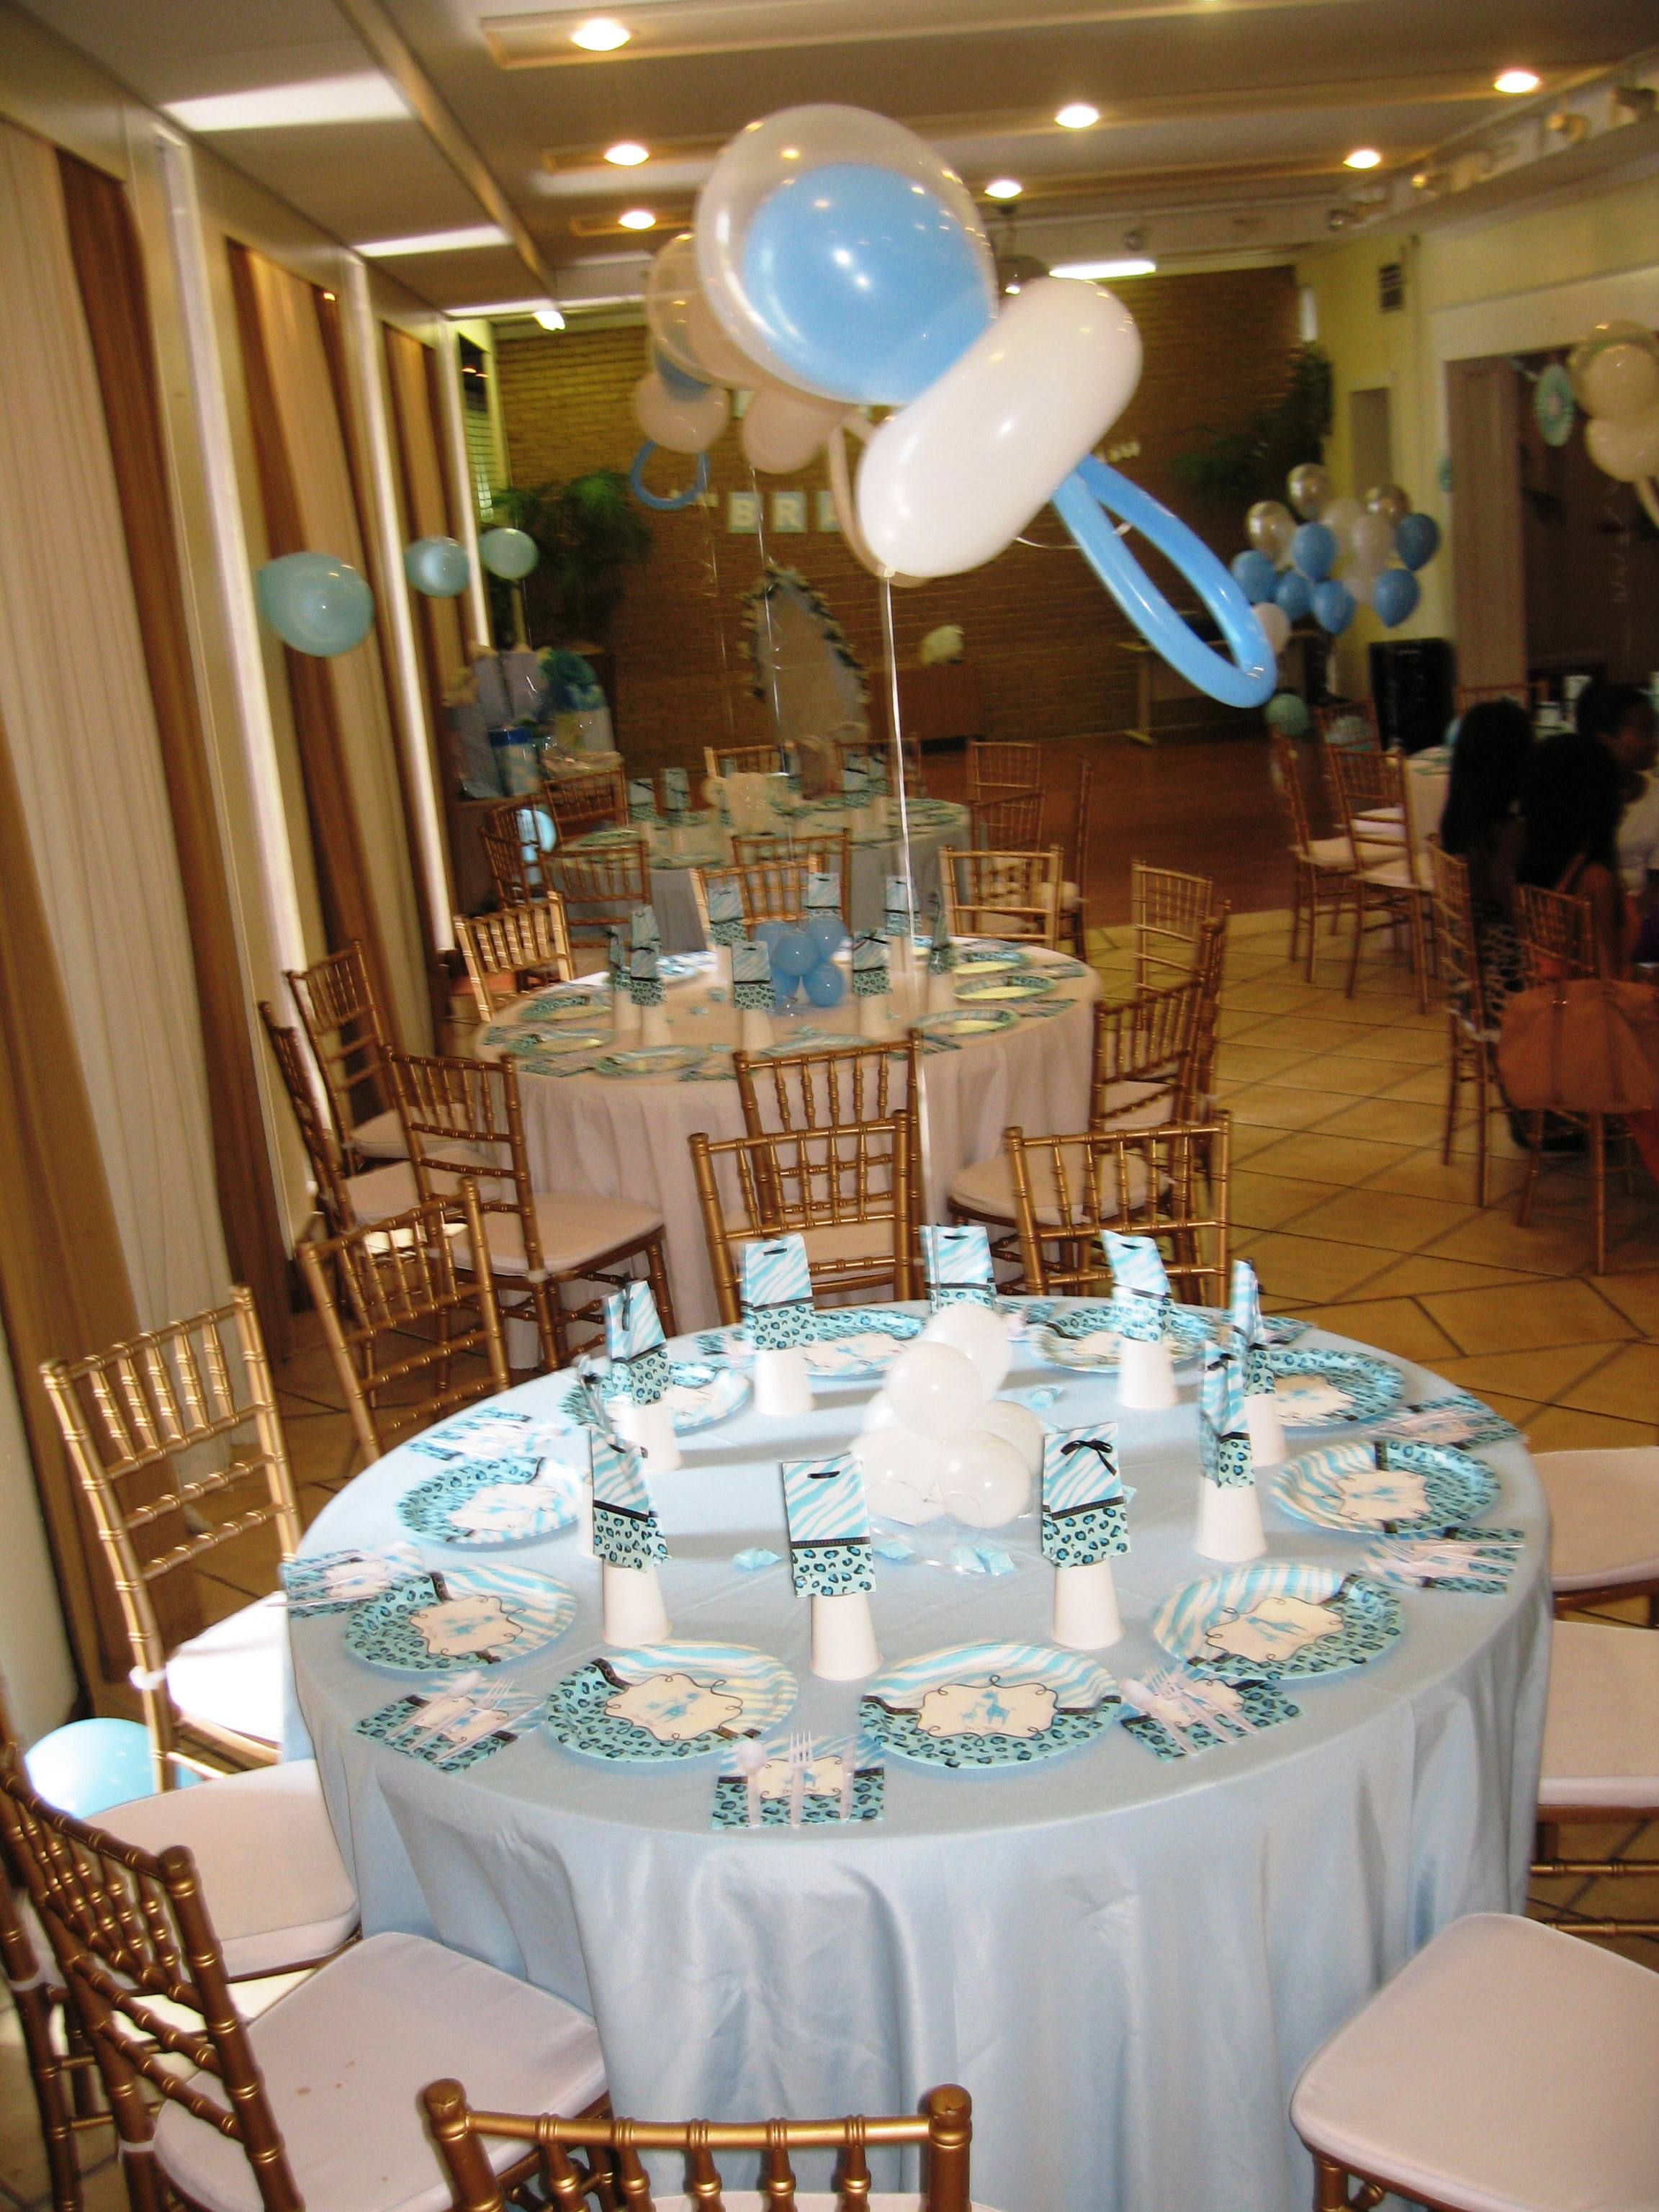 Baby shower table decor centerpieces table decor for Baby shower decoration ideas pinterest